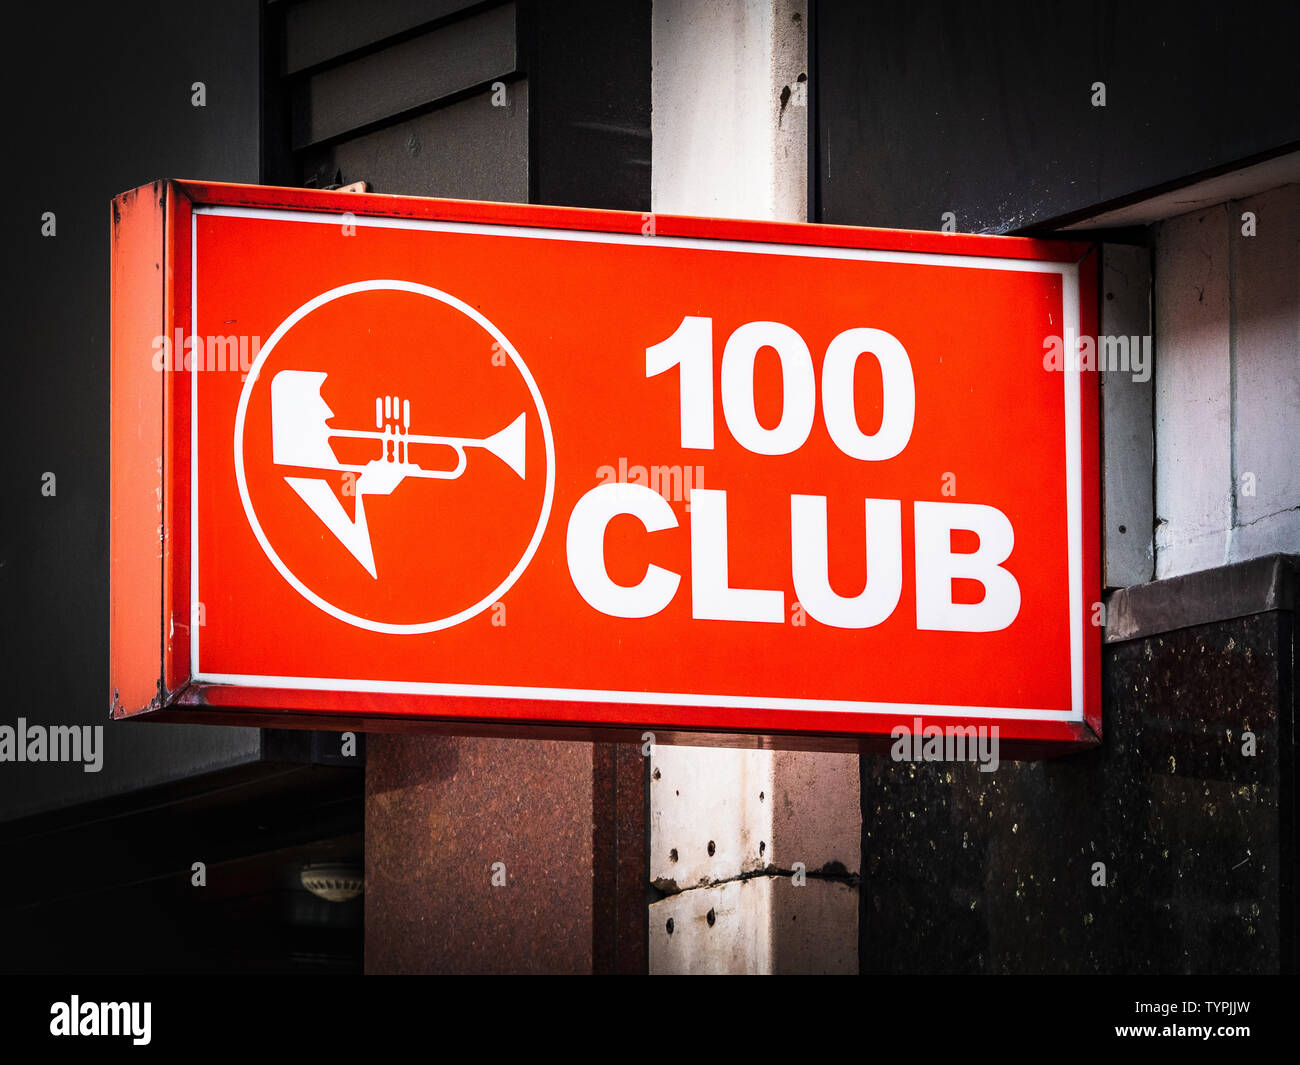 100 Club  - a music venue located at 100 Oxford Street in Central London. The 100 Club has been hosting live music since 1942. - Stock Image